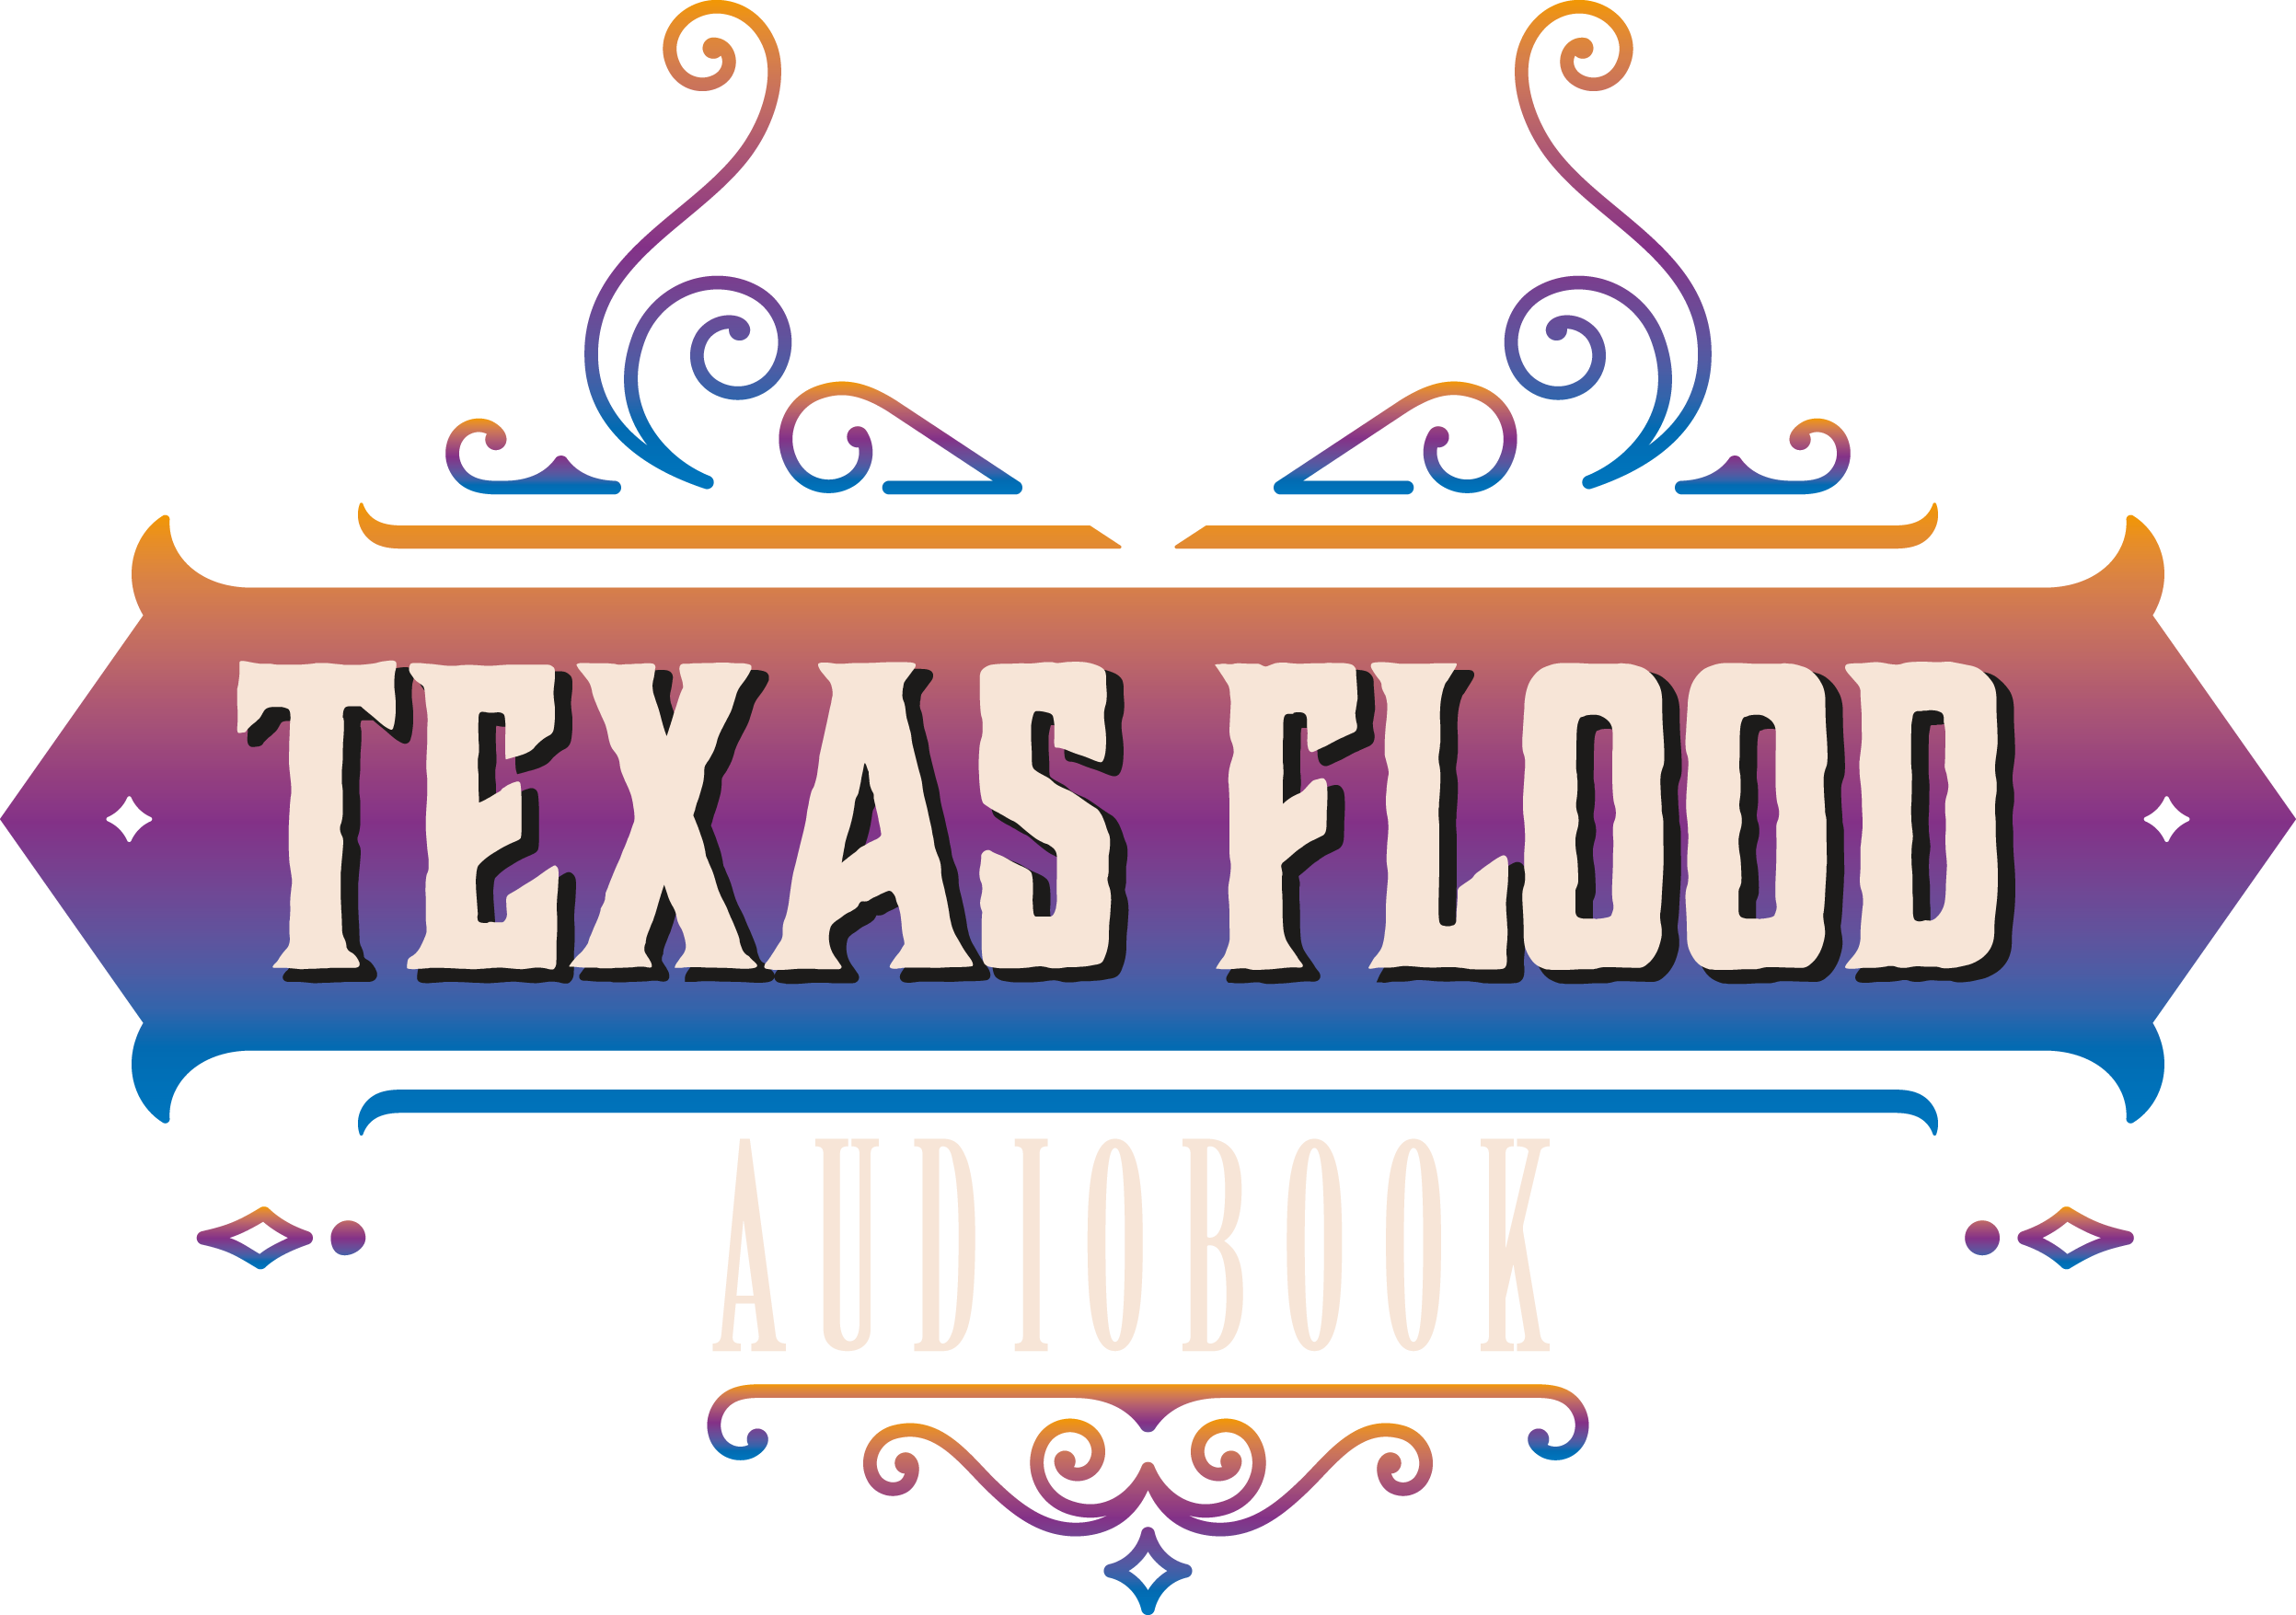 Texas-Flood-web-header